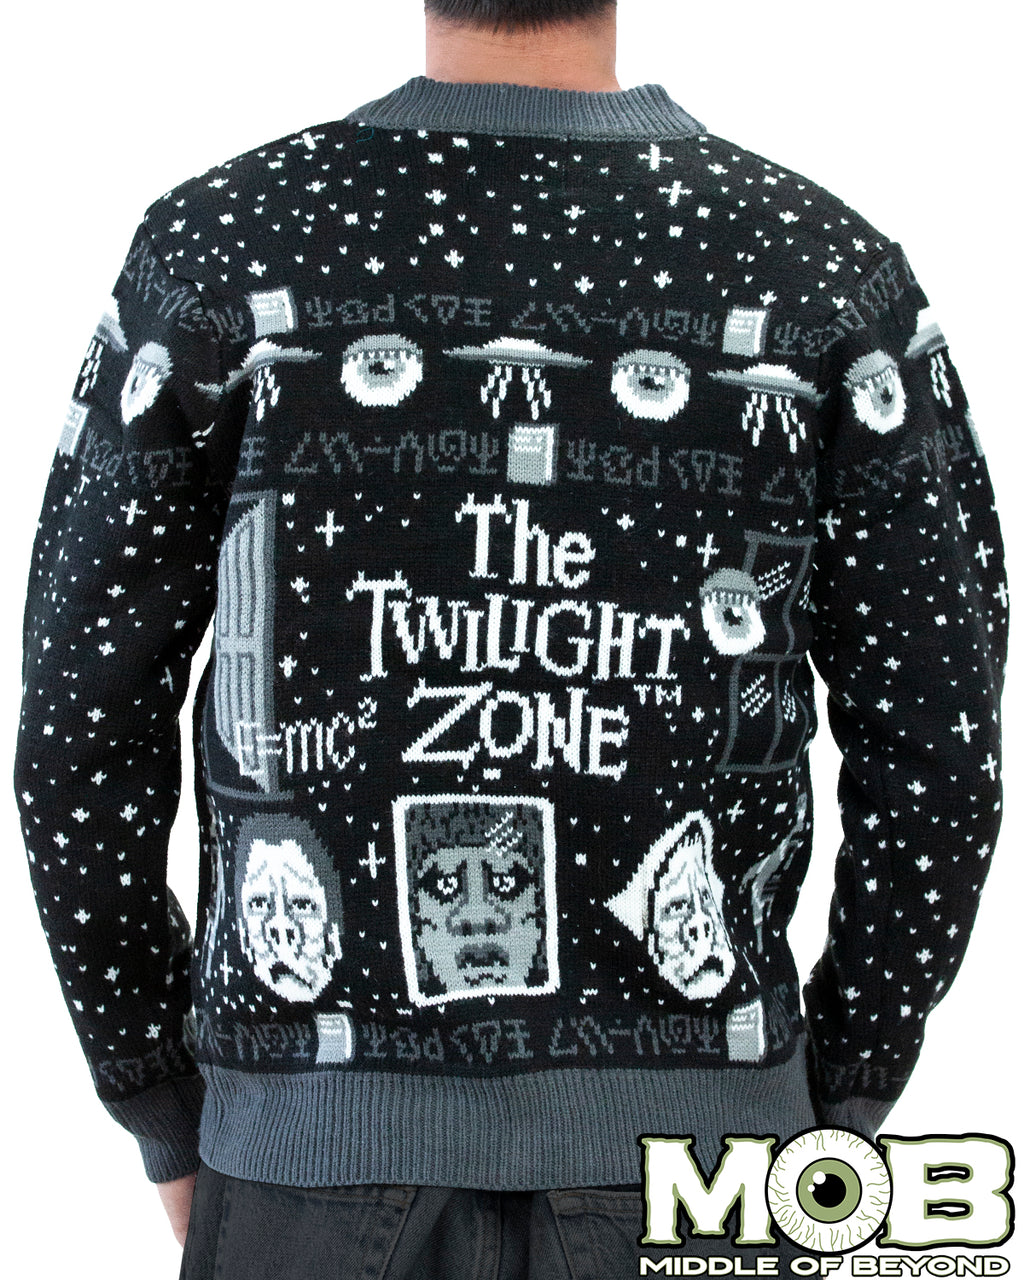 Twilight Zone Cardigan